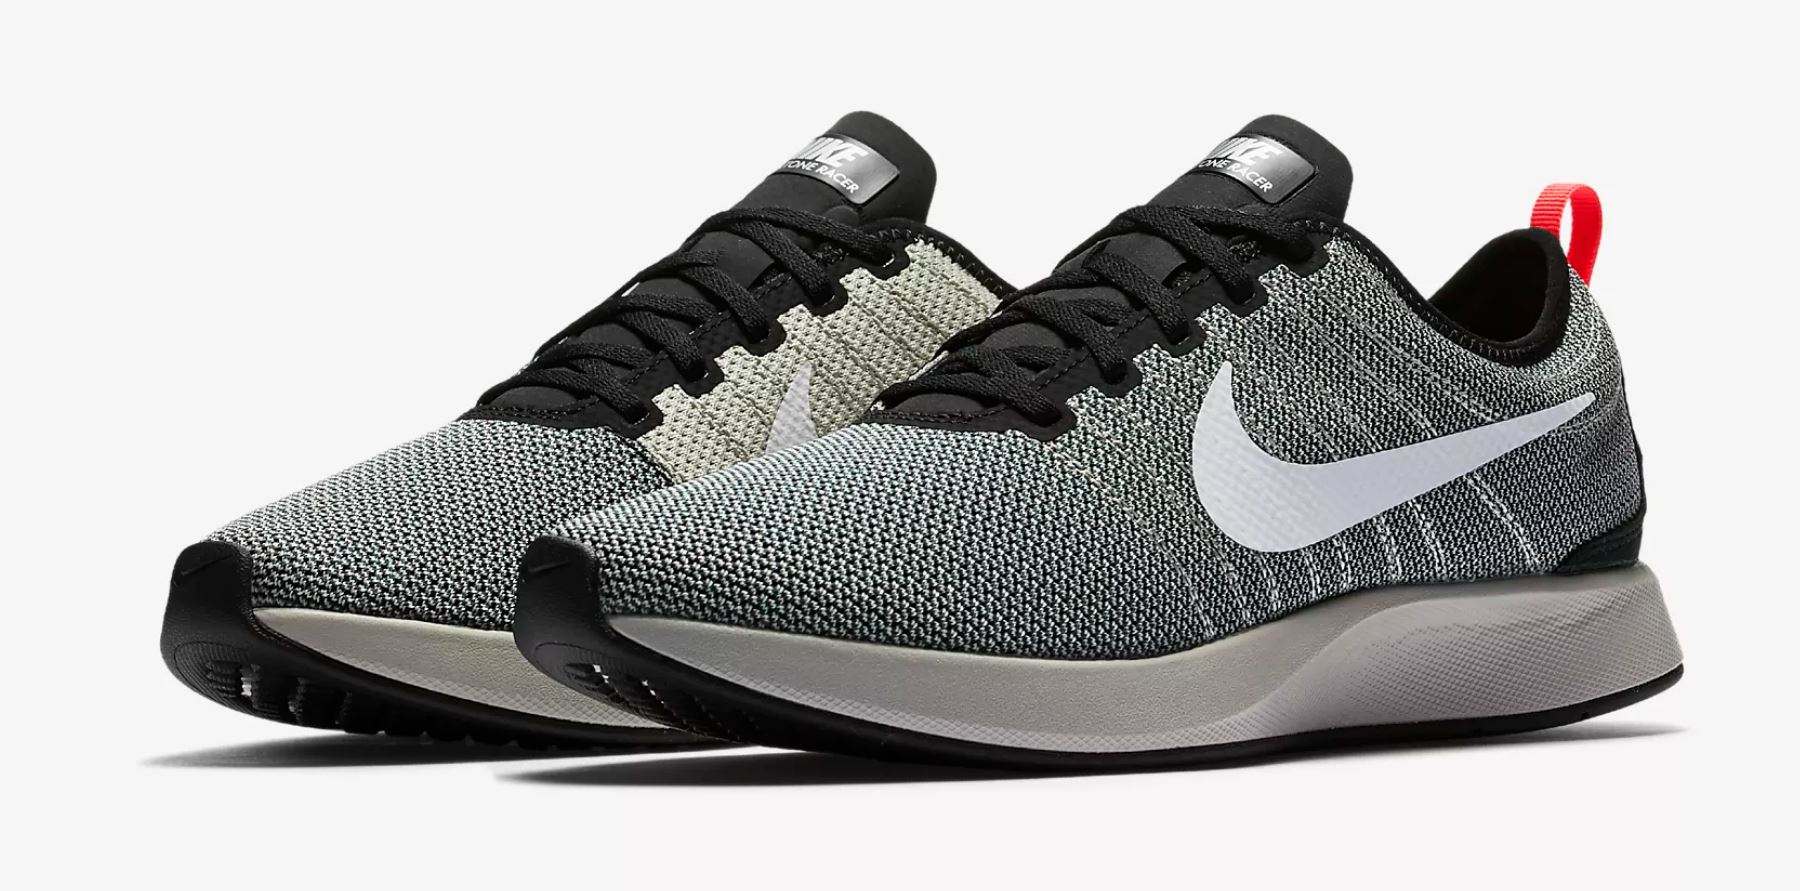 Nike to flash sale: Save up to Nike 50% on select styles Clark Deals 51801f